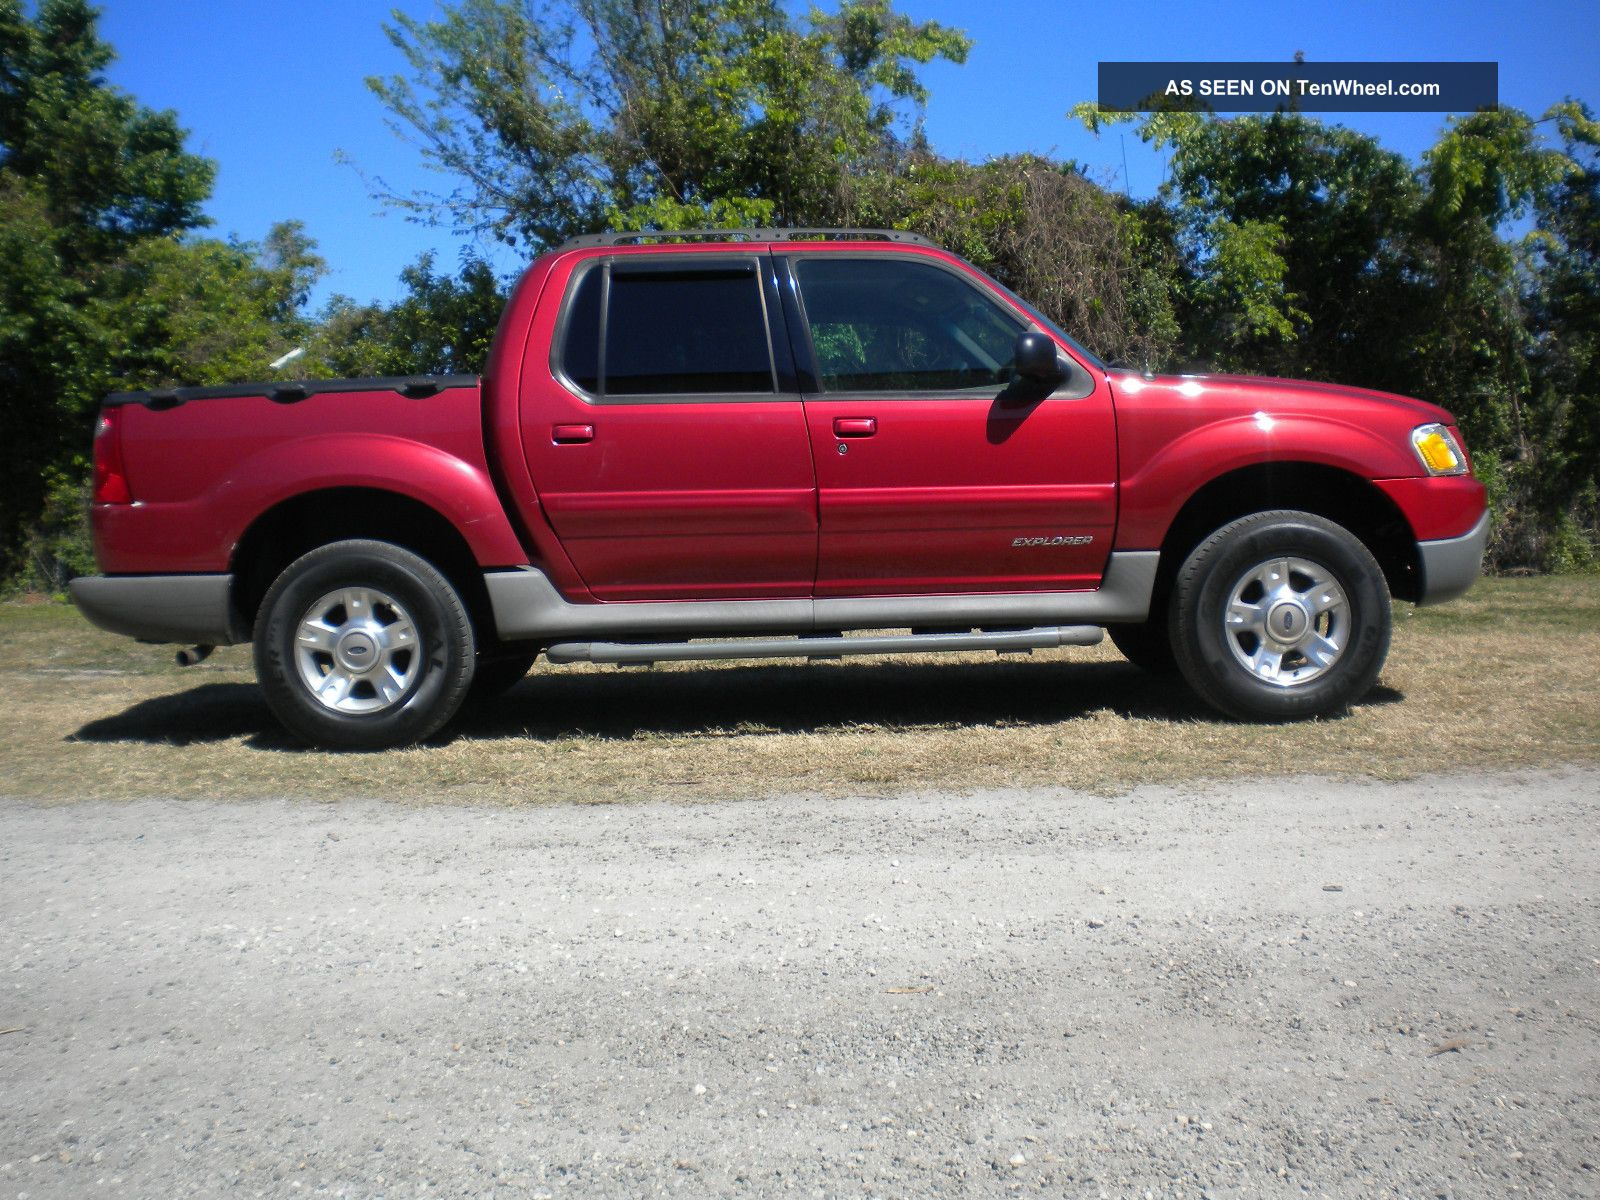 2001 ford explorer sport trac 4x4 4wd explorer sport trac photo 4. Cars Review. Best American Auto & Cars Review